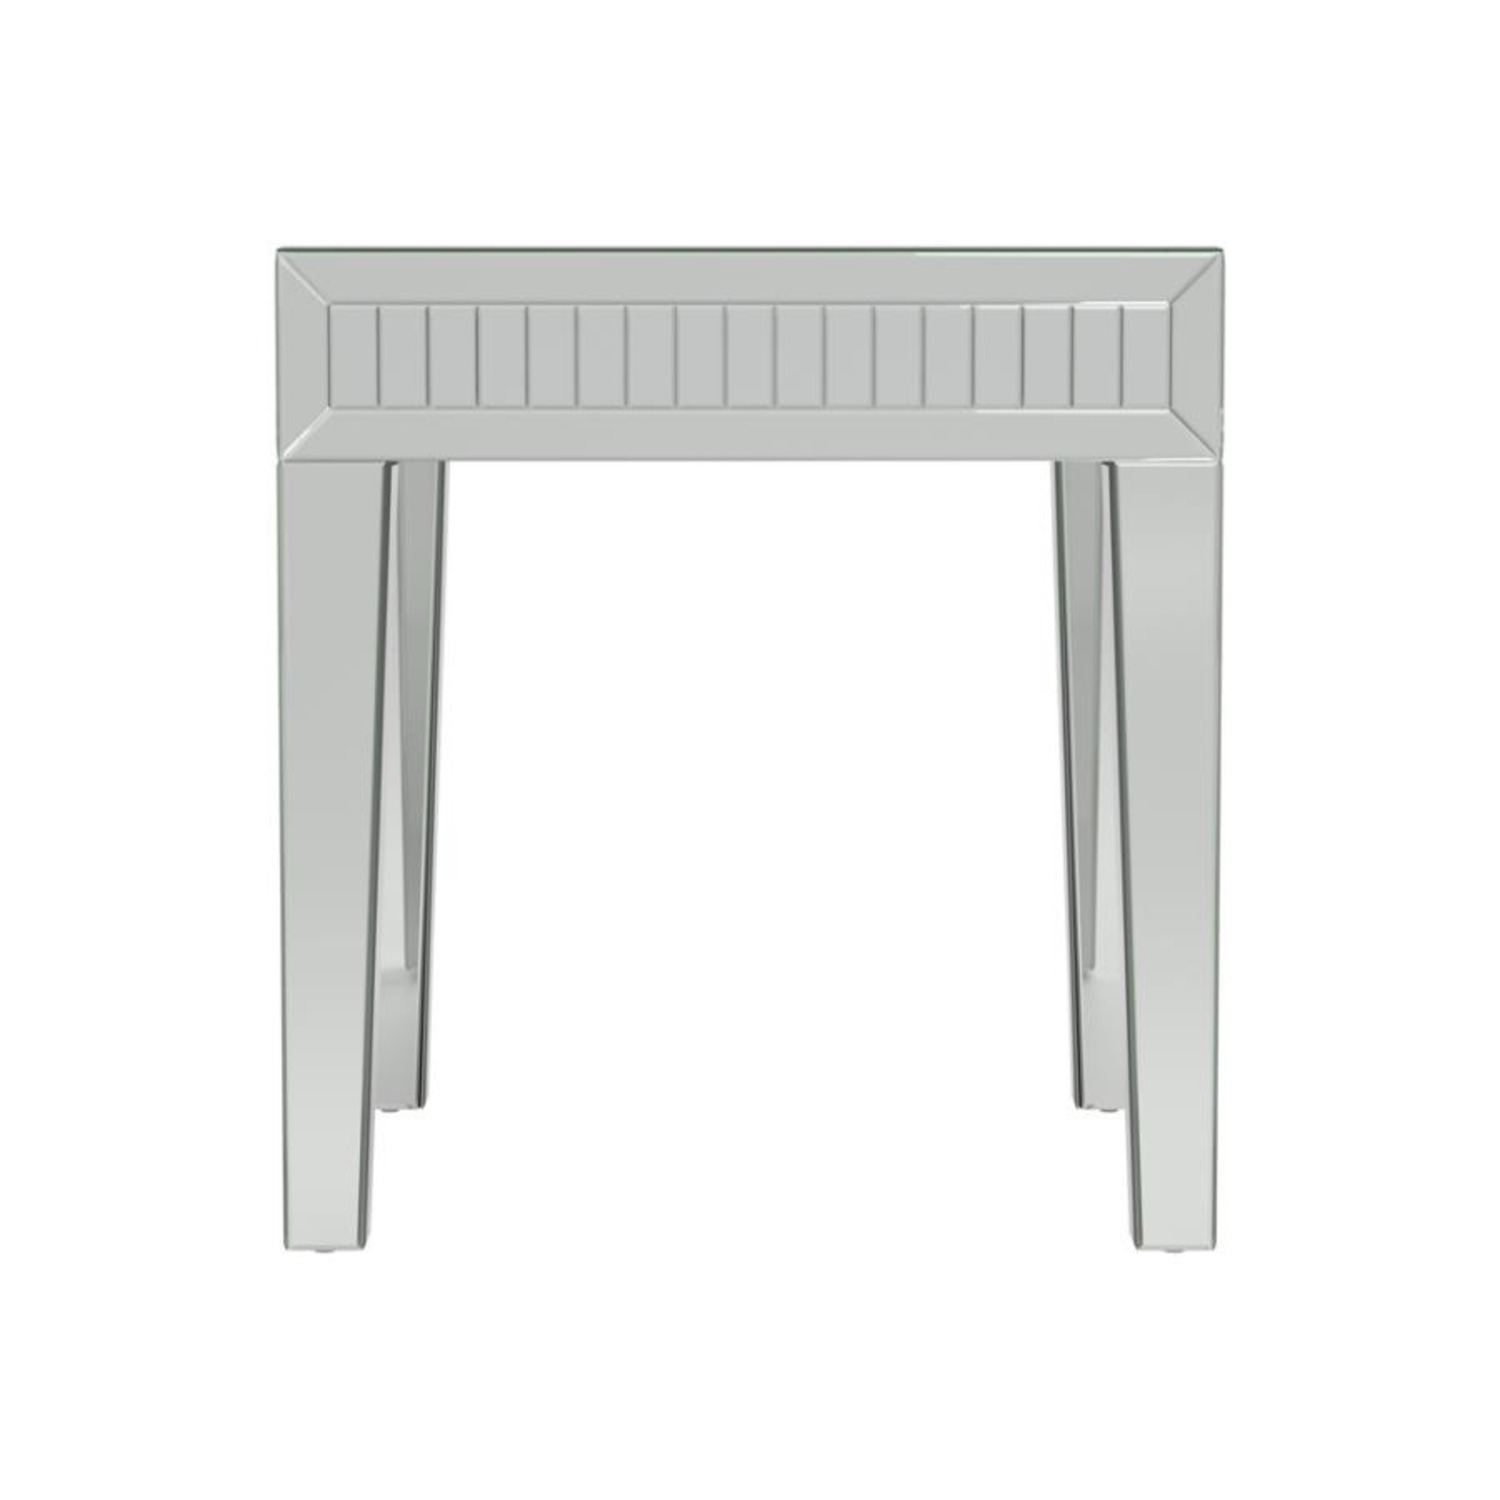 Ultra-Glam Side Table In Silver Finish - image-1